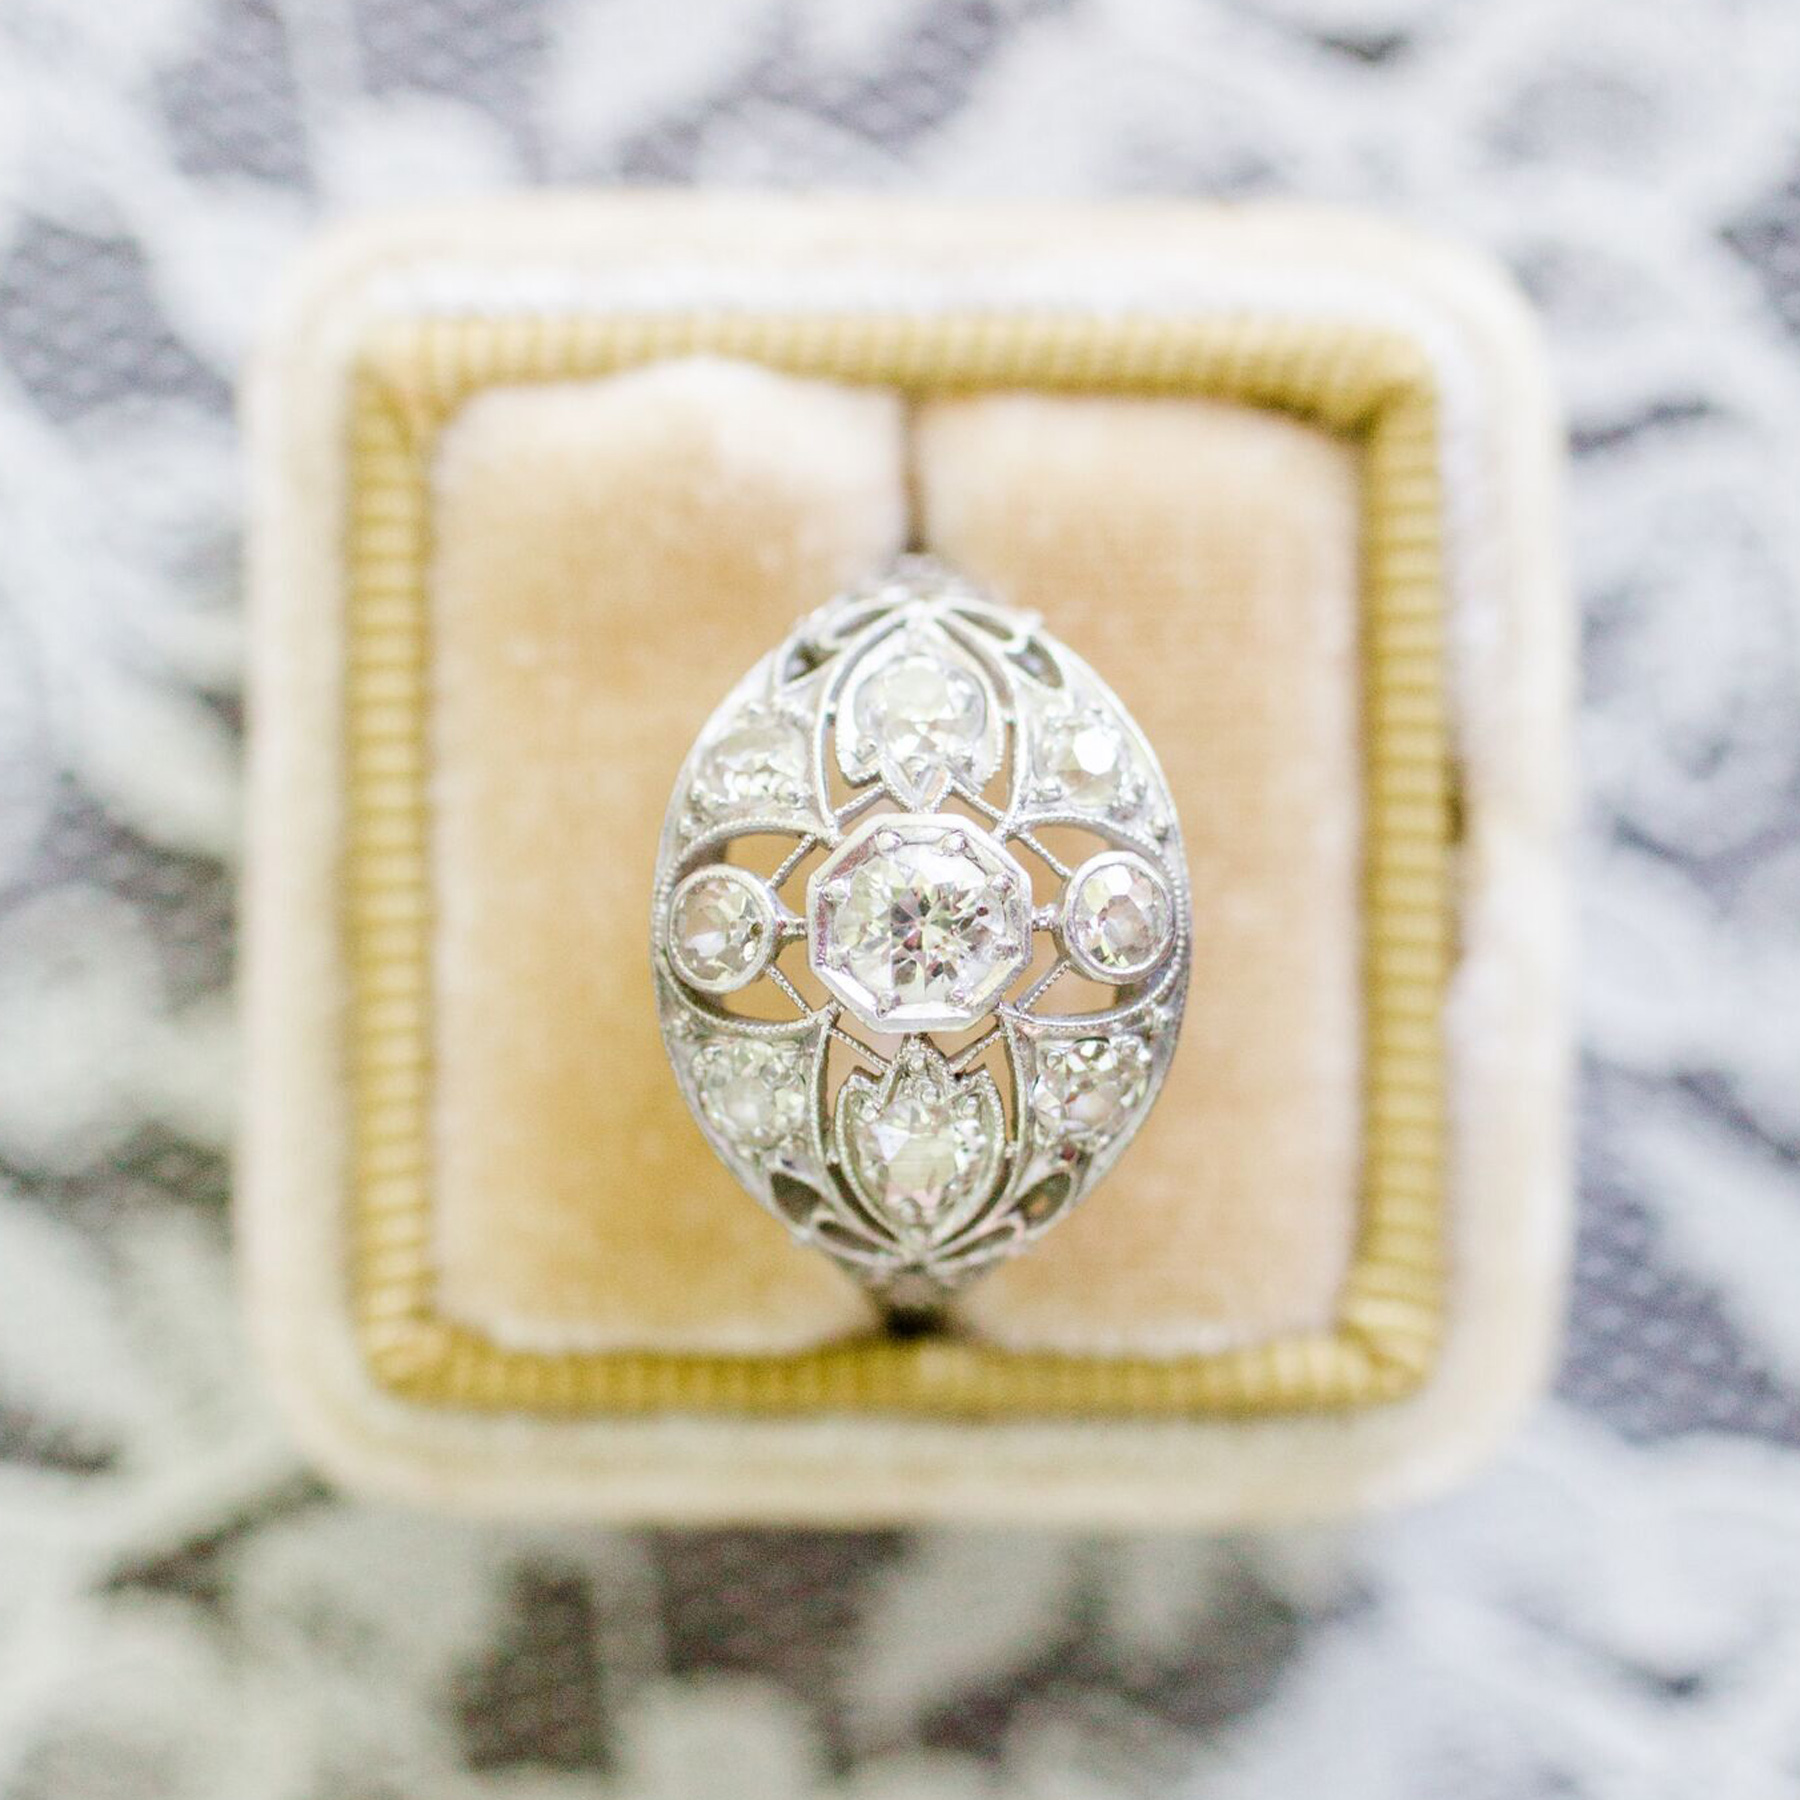 Engagement ring trends 2021: Vintage engagement ring in velvet ring box